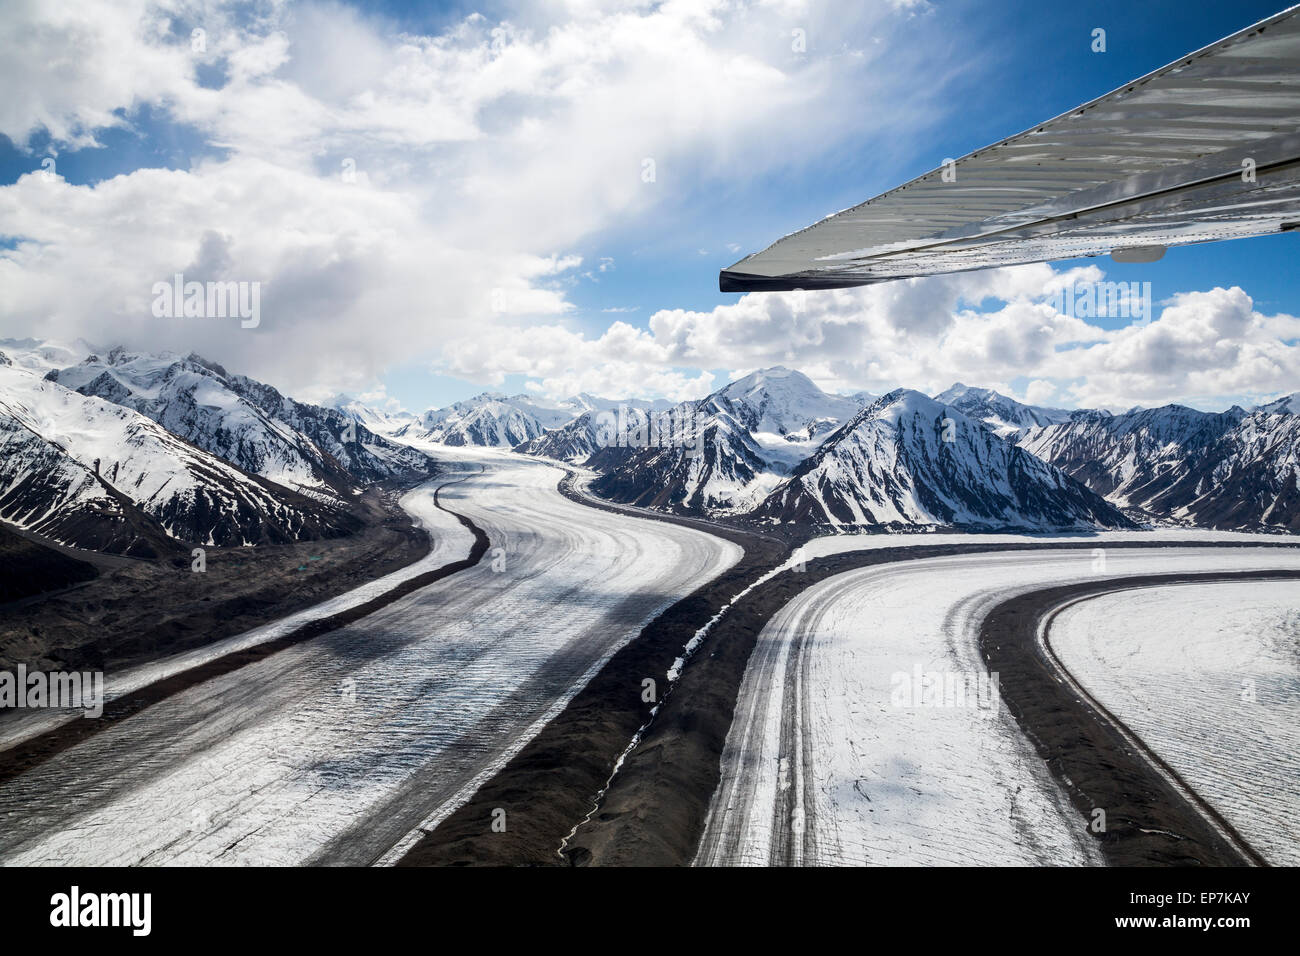 Scenic Flight over the glaciers of the Kluane National Park, Yukon Territory of Canada - Stock Image